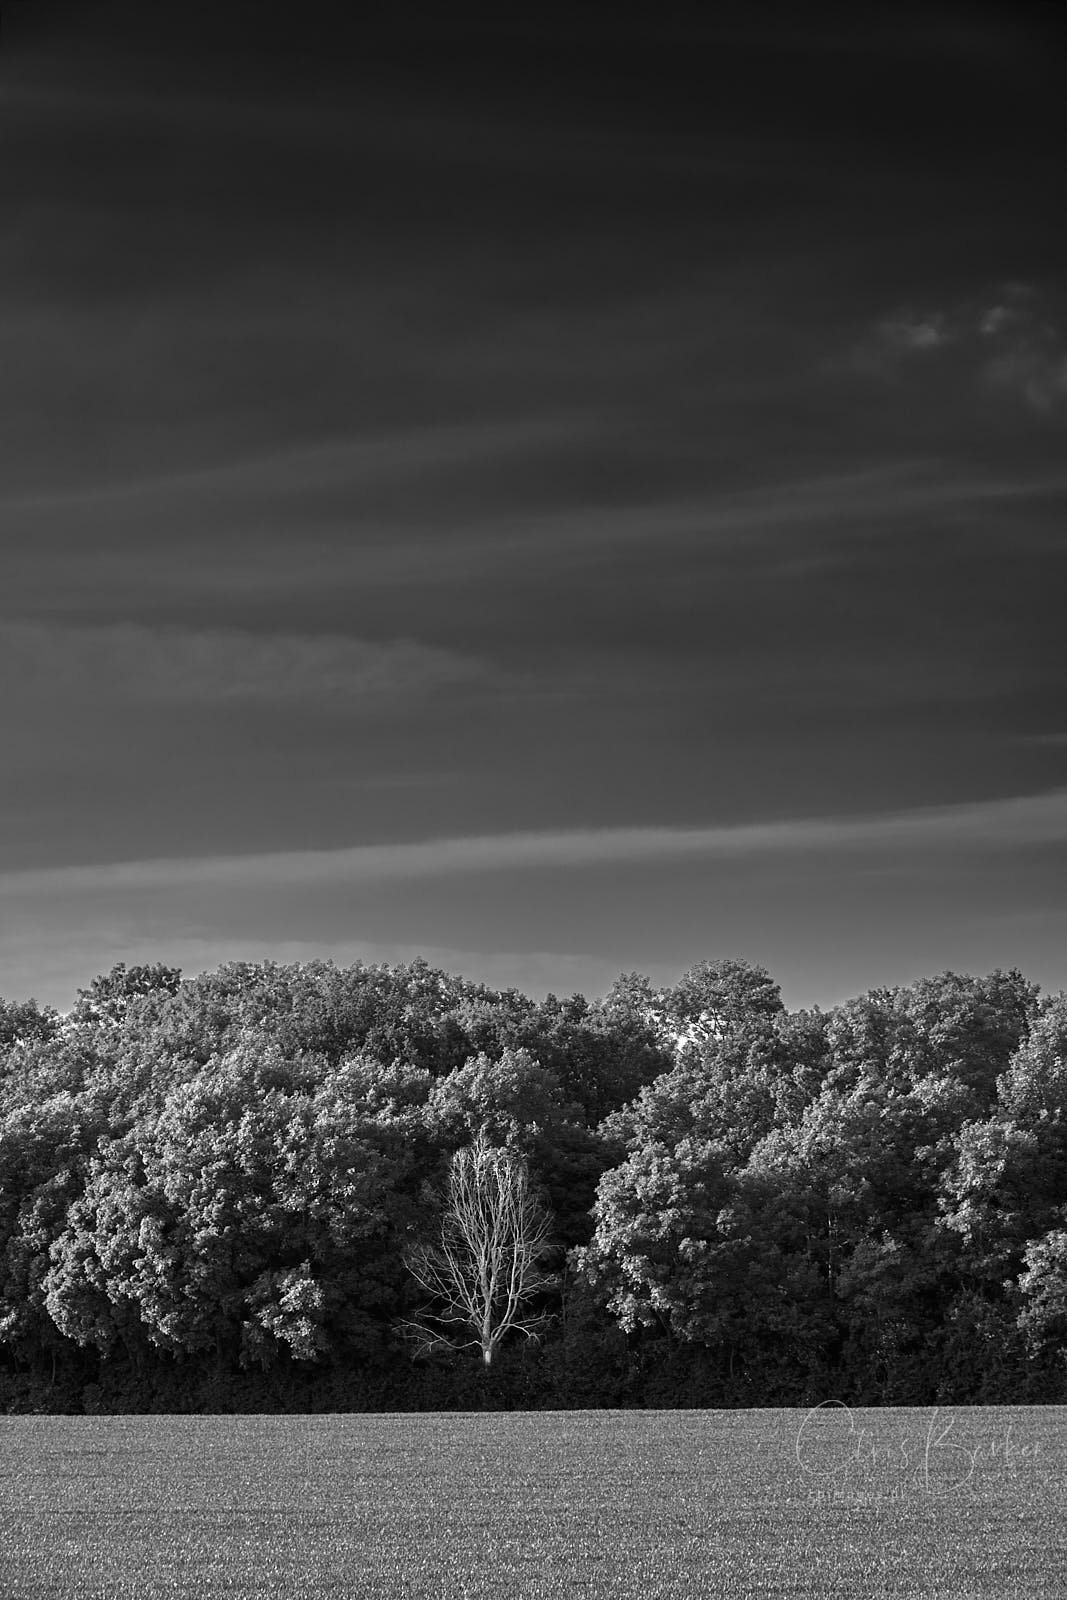 Monochrome image of wood and sky